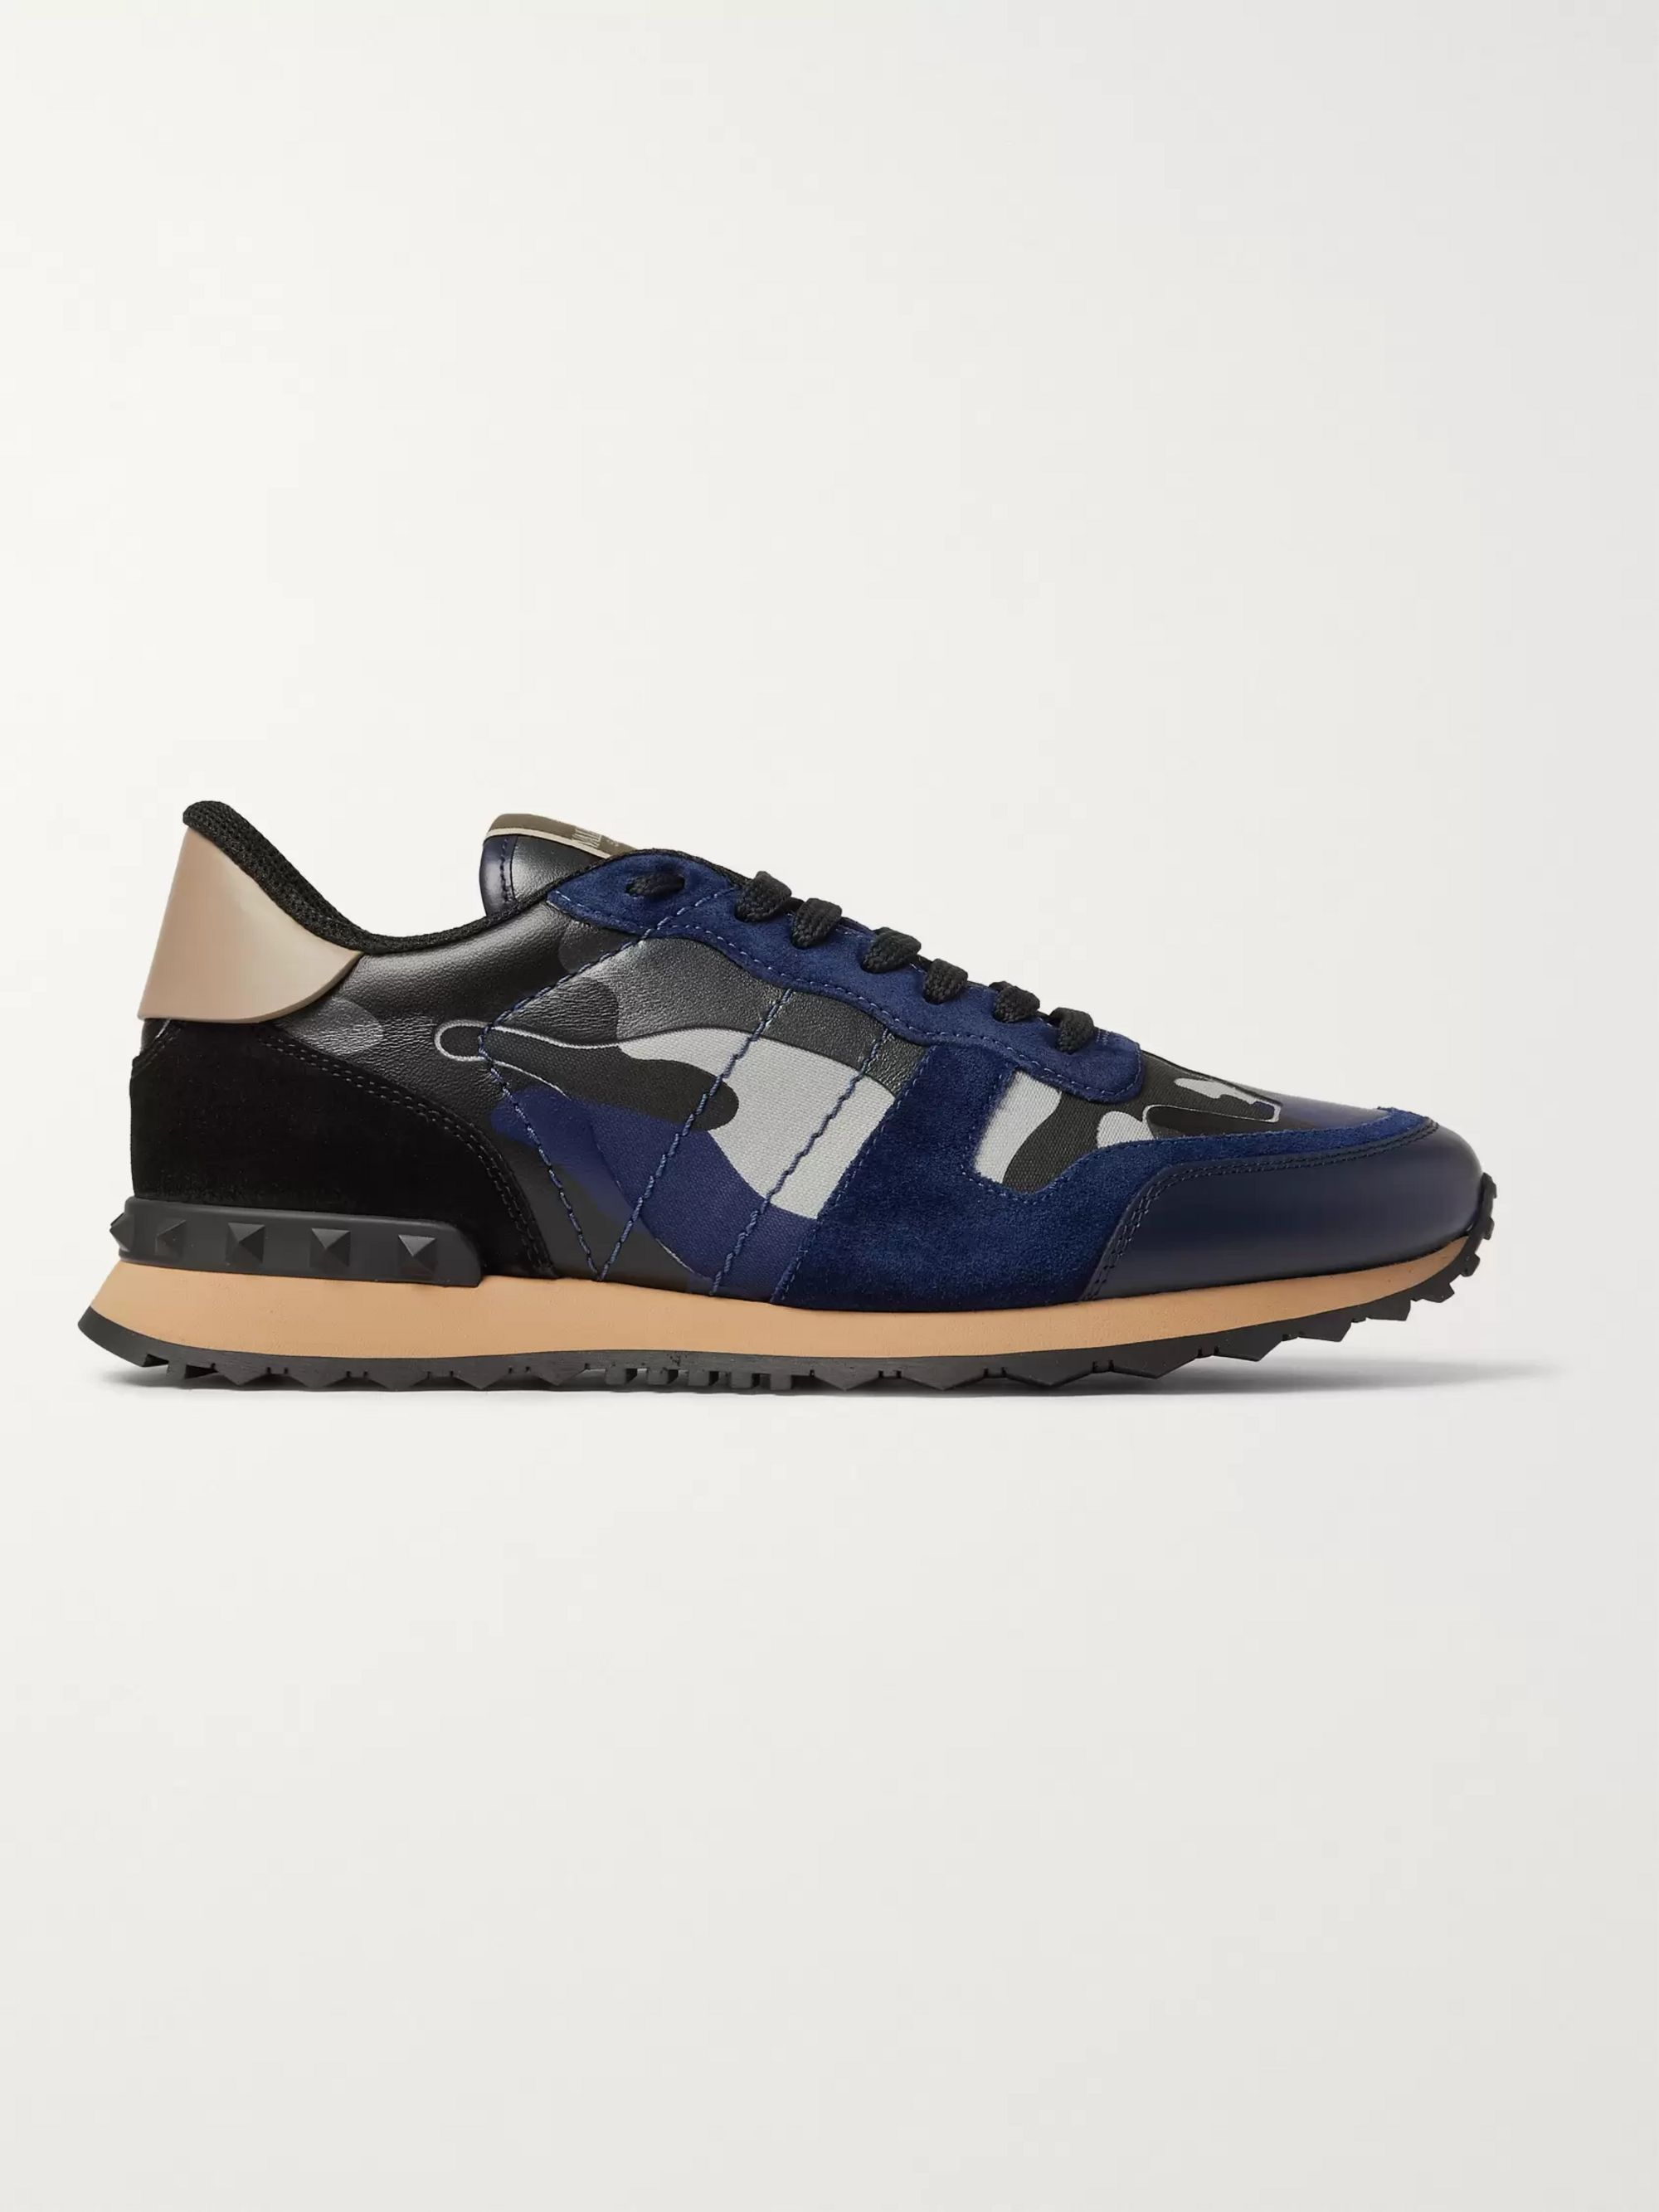 Valentino Valentino Garavani Rockrunner Metallic Camouflage-Print Canvas, Leather and Suede Sneakers